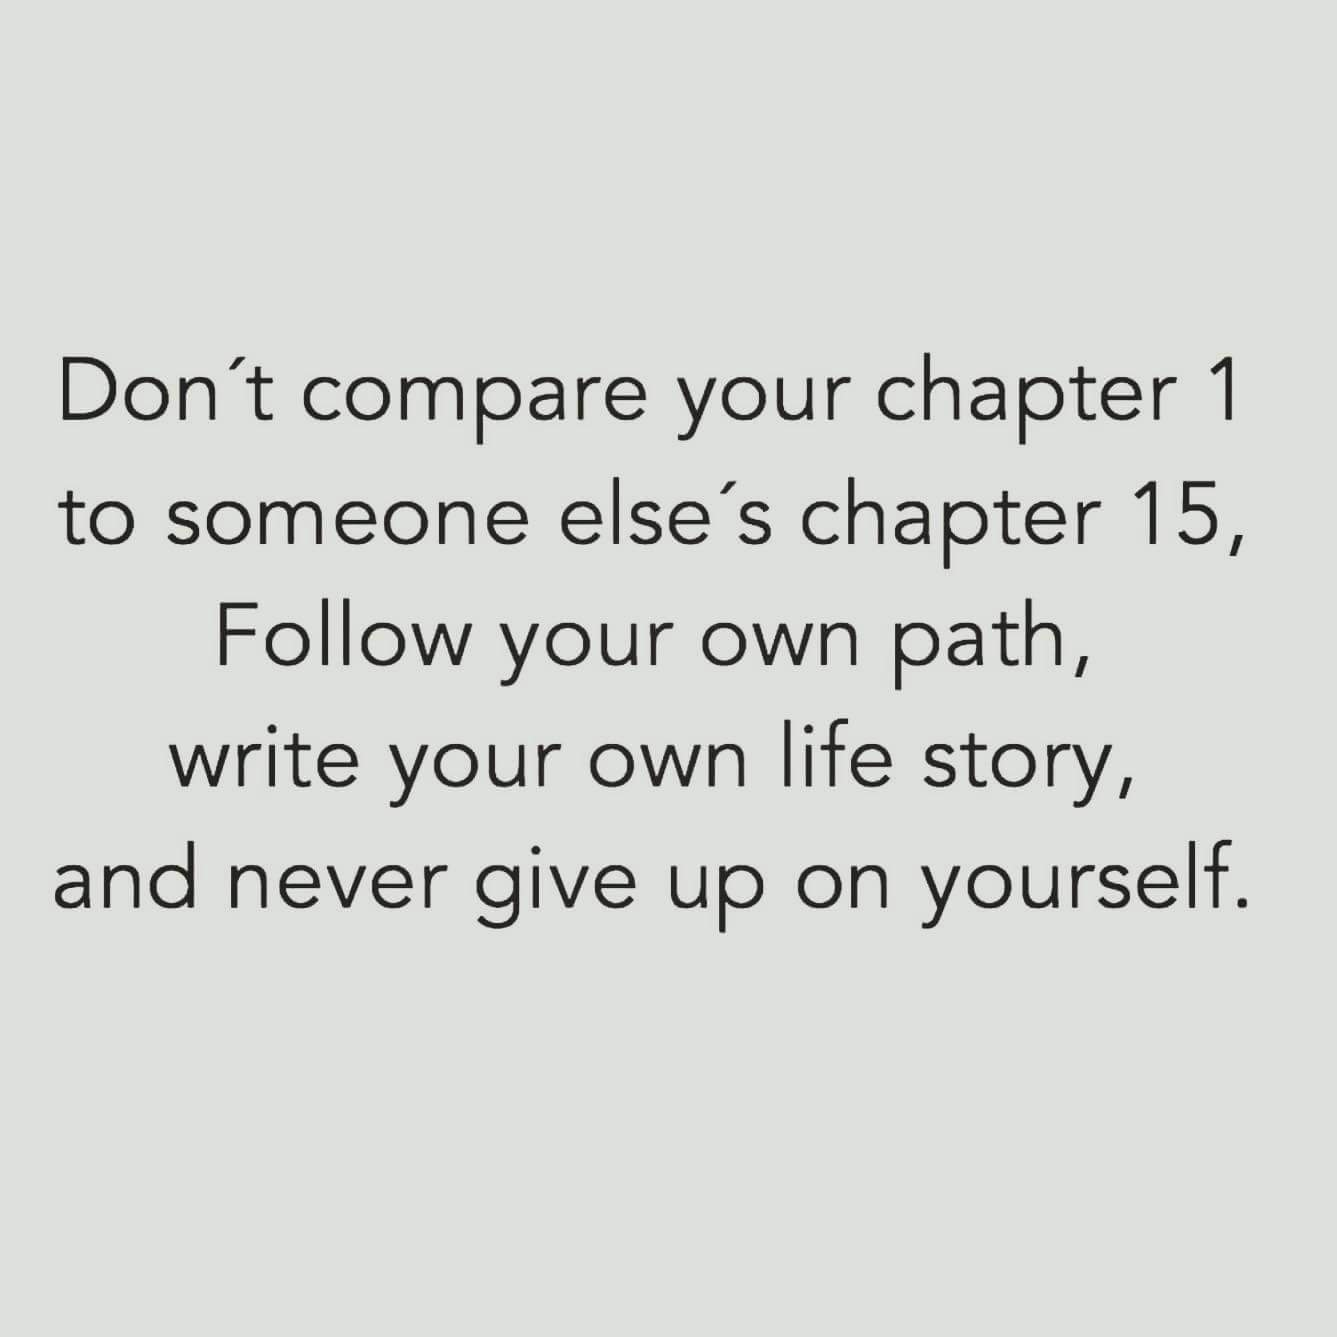 Your chapter